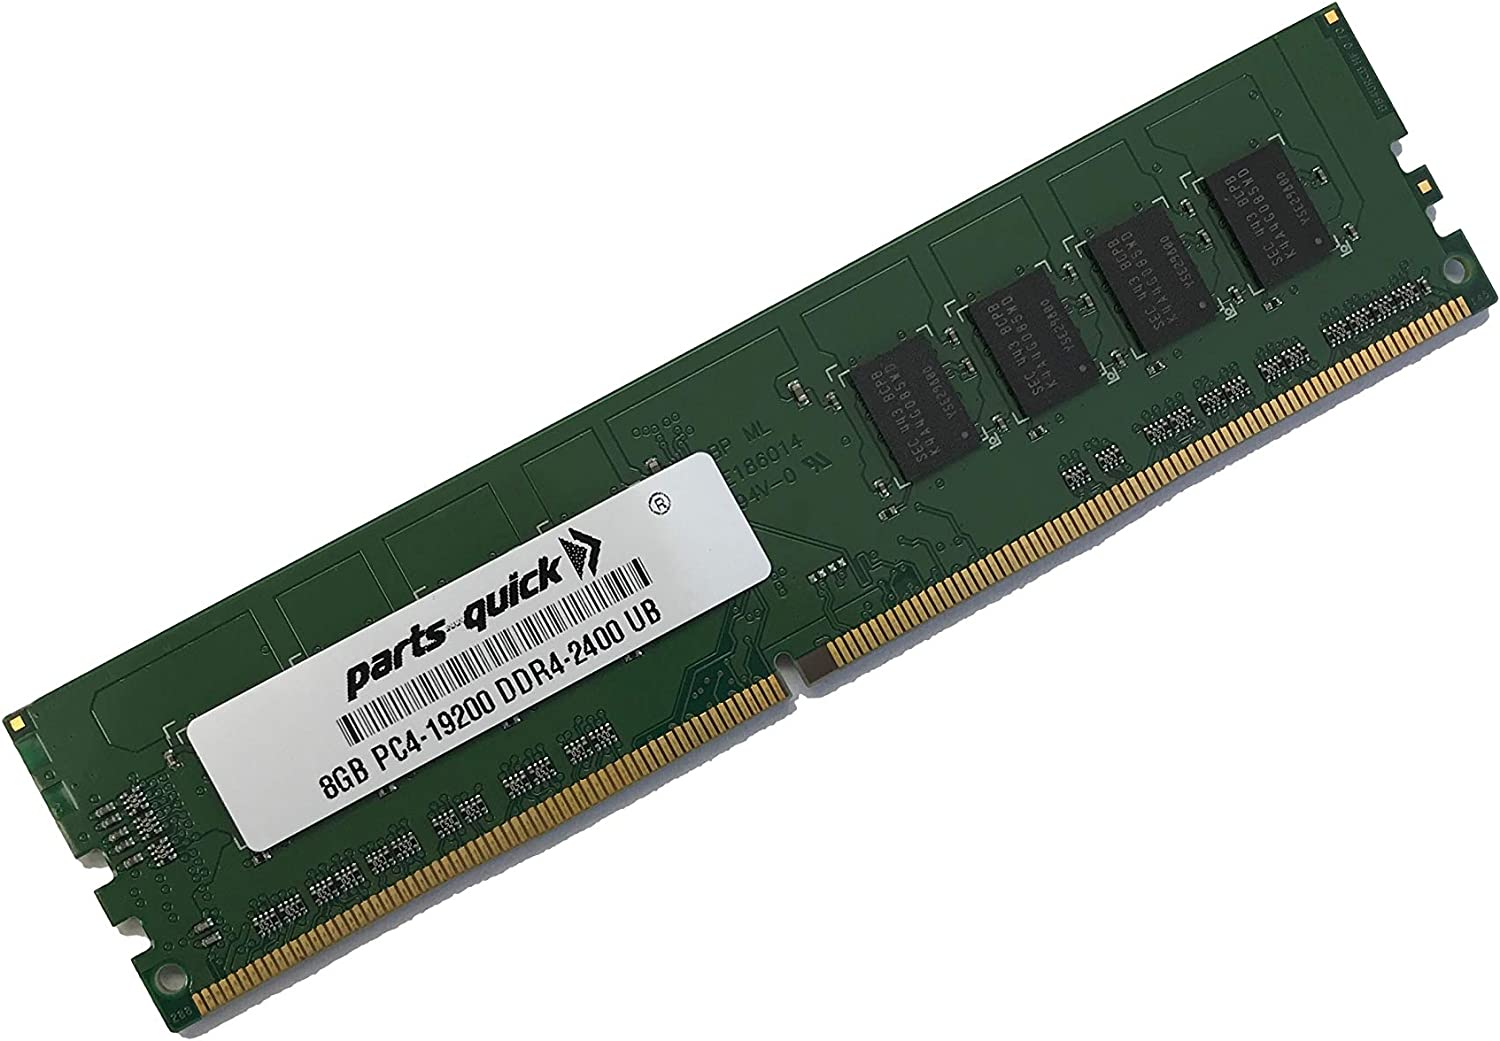 parts-quick 8GB Memory for QNAP TS-832X Compatible DDR4-2400 260 PIN RAM Module SODIMM